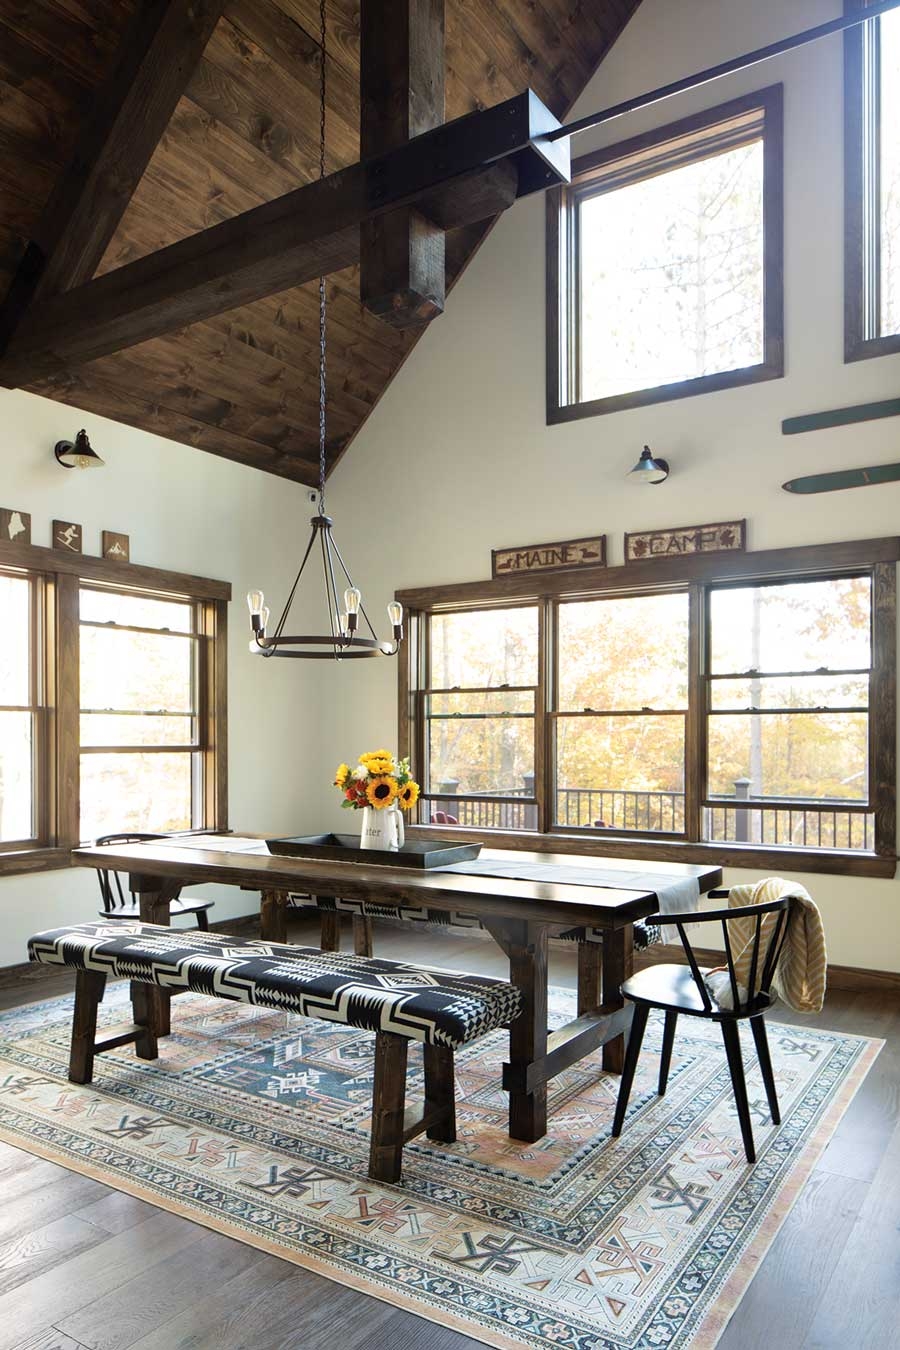 Eric's father, David LaCroix, built the pine farmhouse table and benches, upholstered in Pendleton wool by a friend.